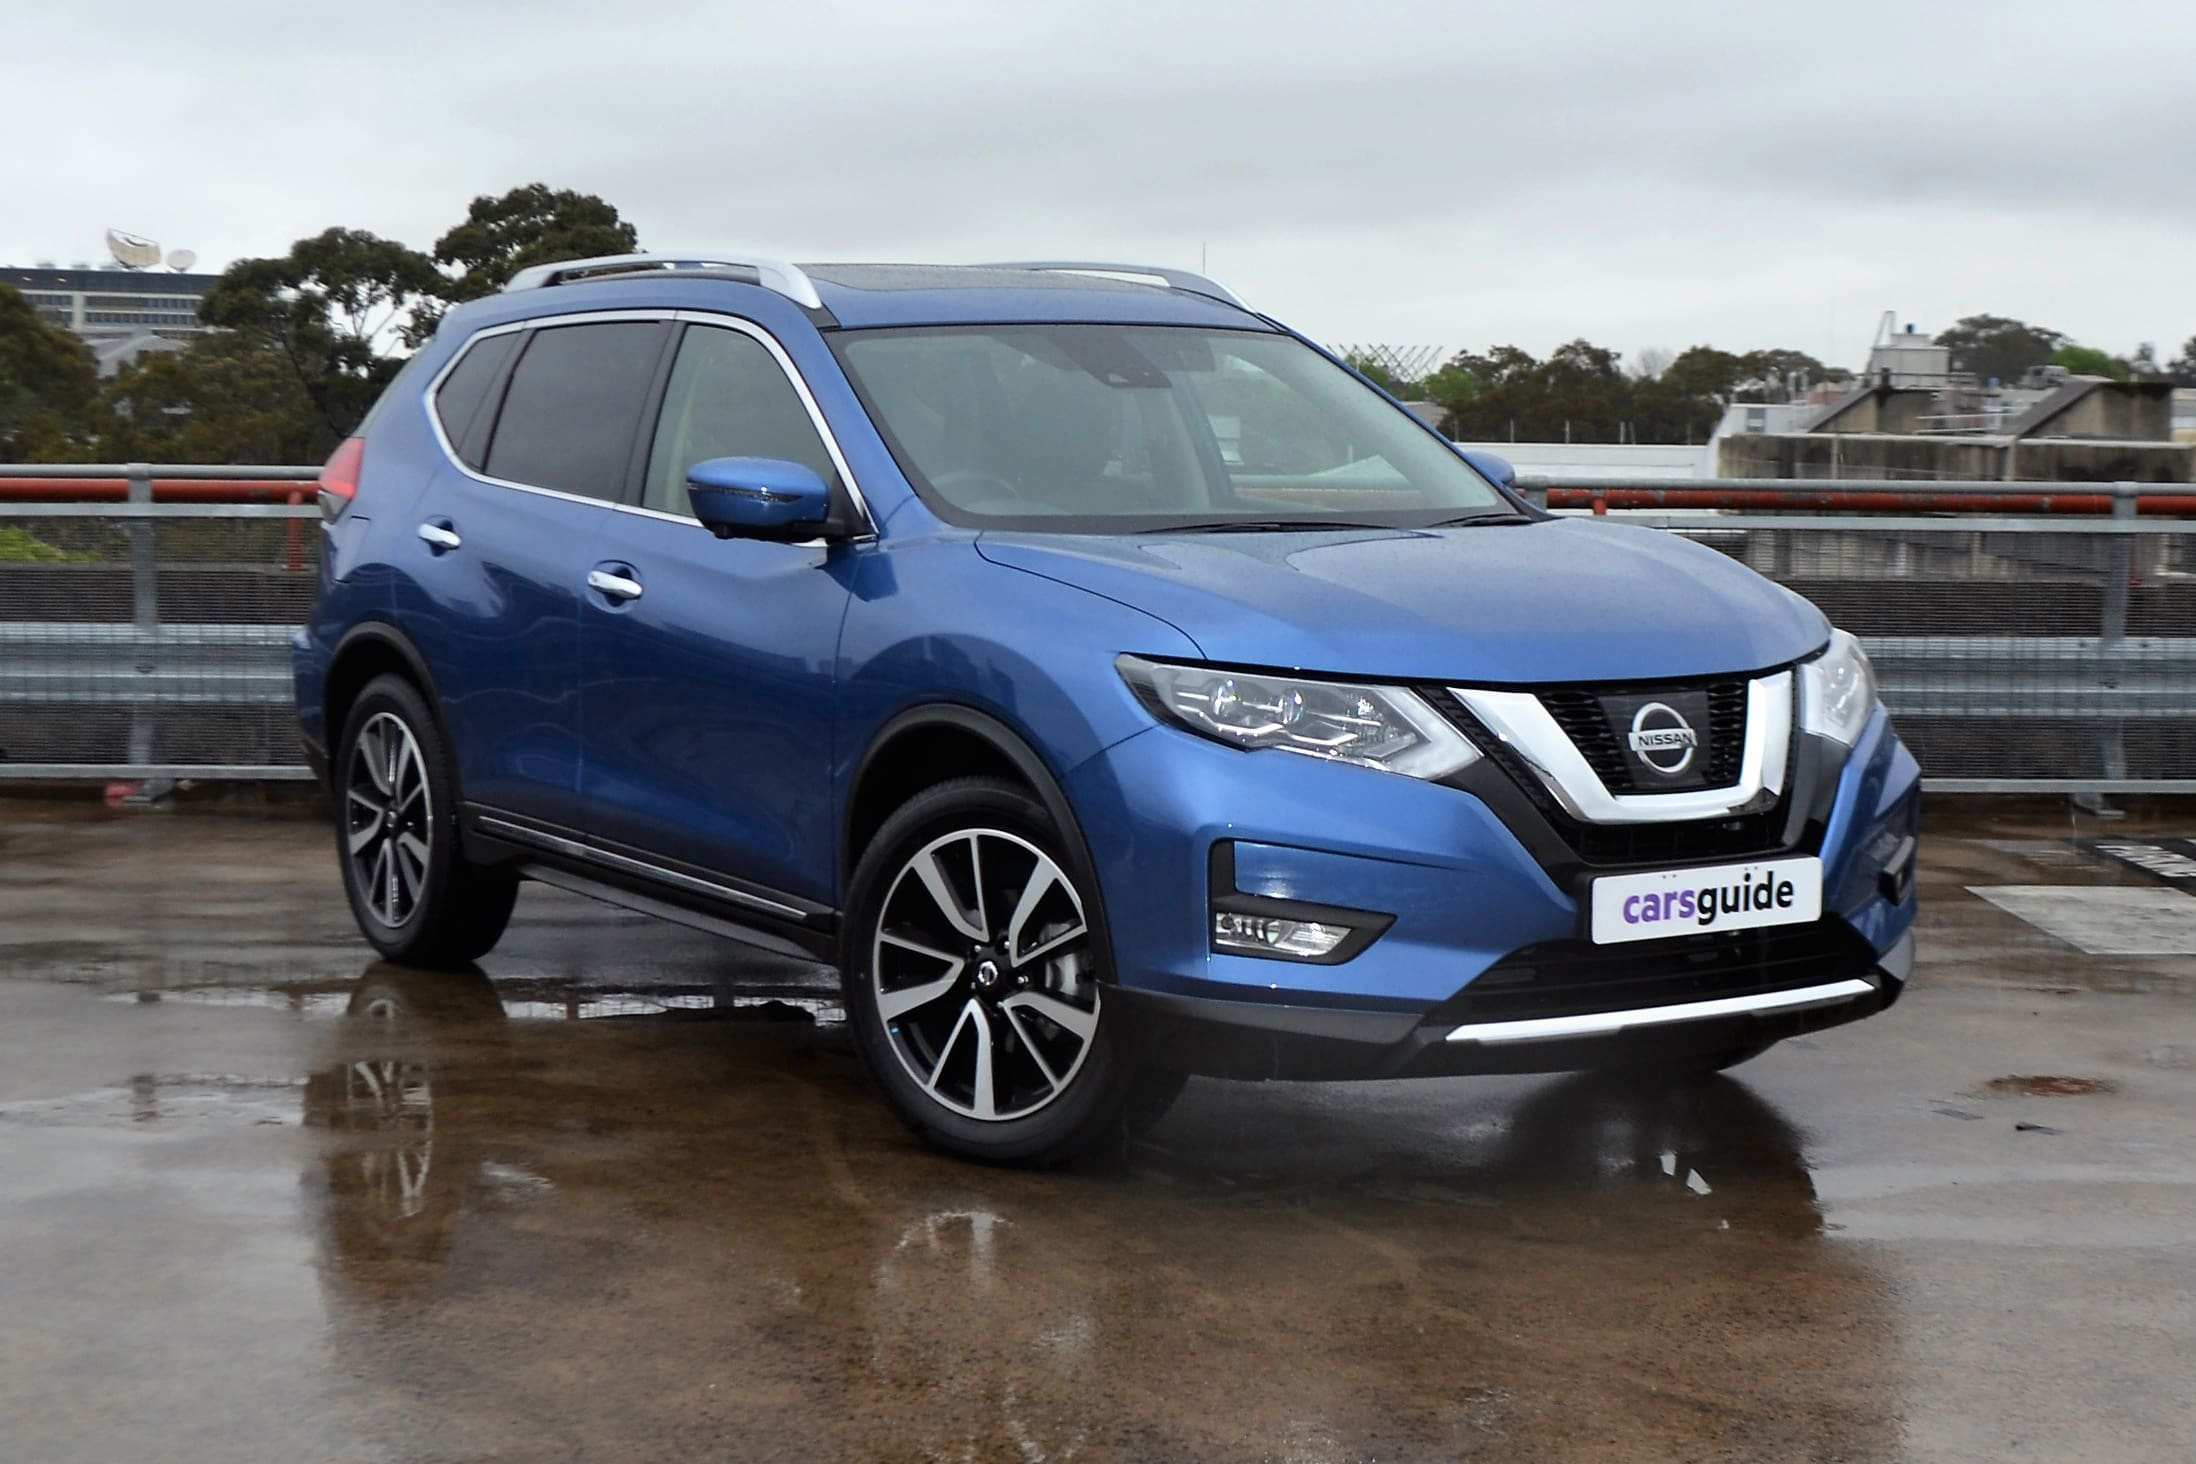 52 Best Review Nissan X Trail 2019 Review Rumors for Nissan X Trail 2019 Review